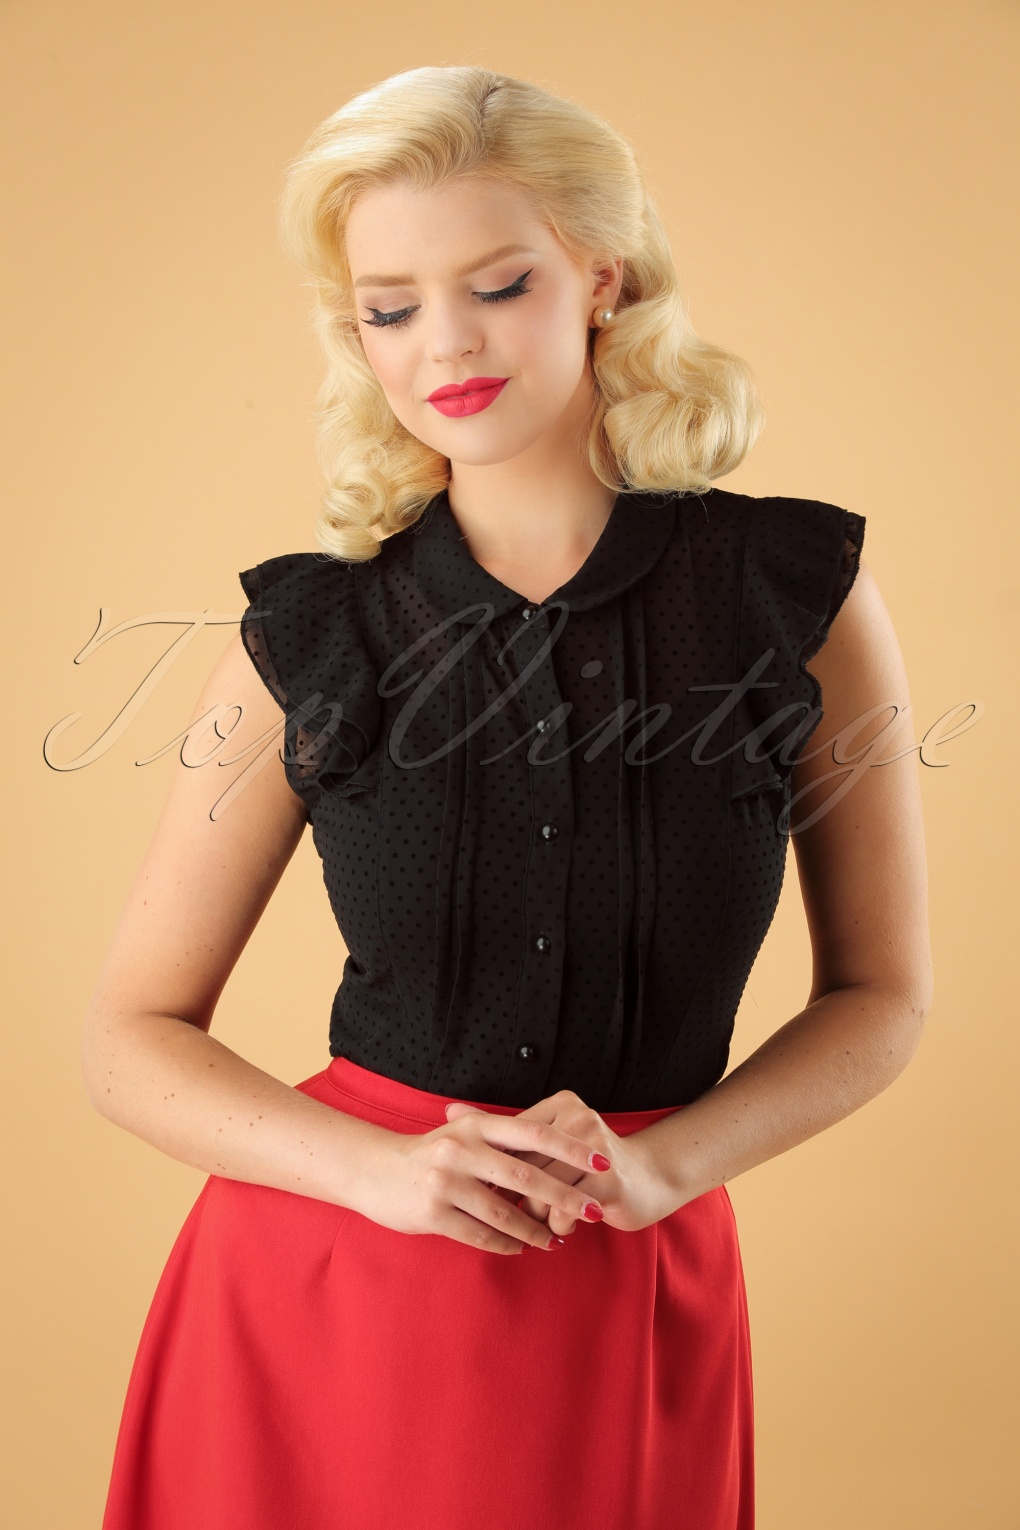 Vintage & Retro Shirts, Halter Tops, Blouses 40s Angelin Polka Flock Blouse in Black £28.52 AT vintagedancer.com